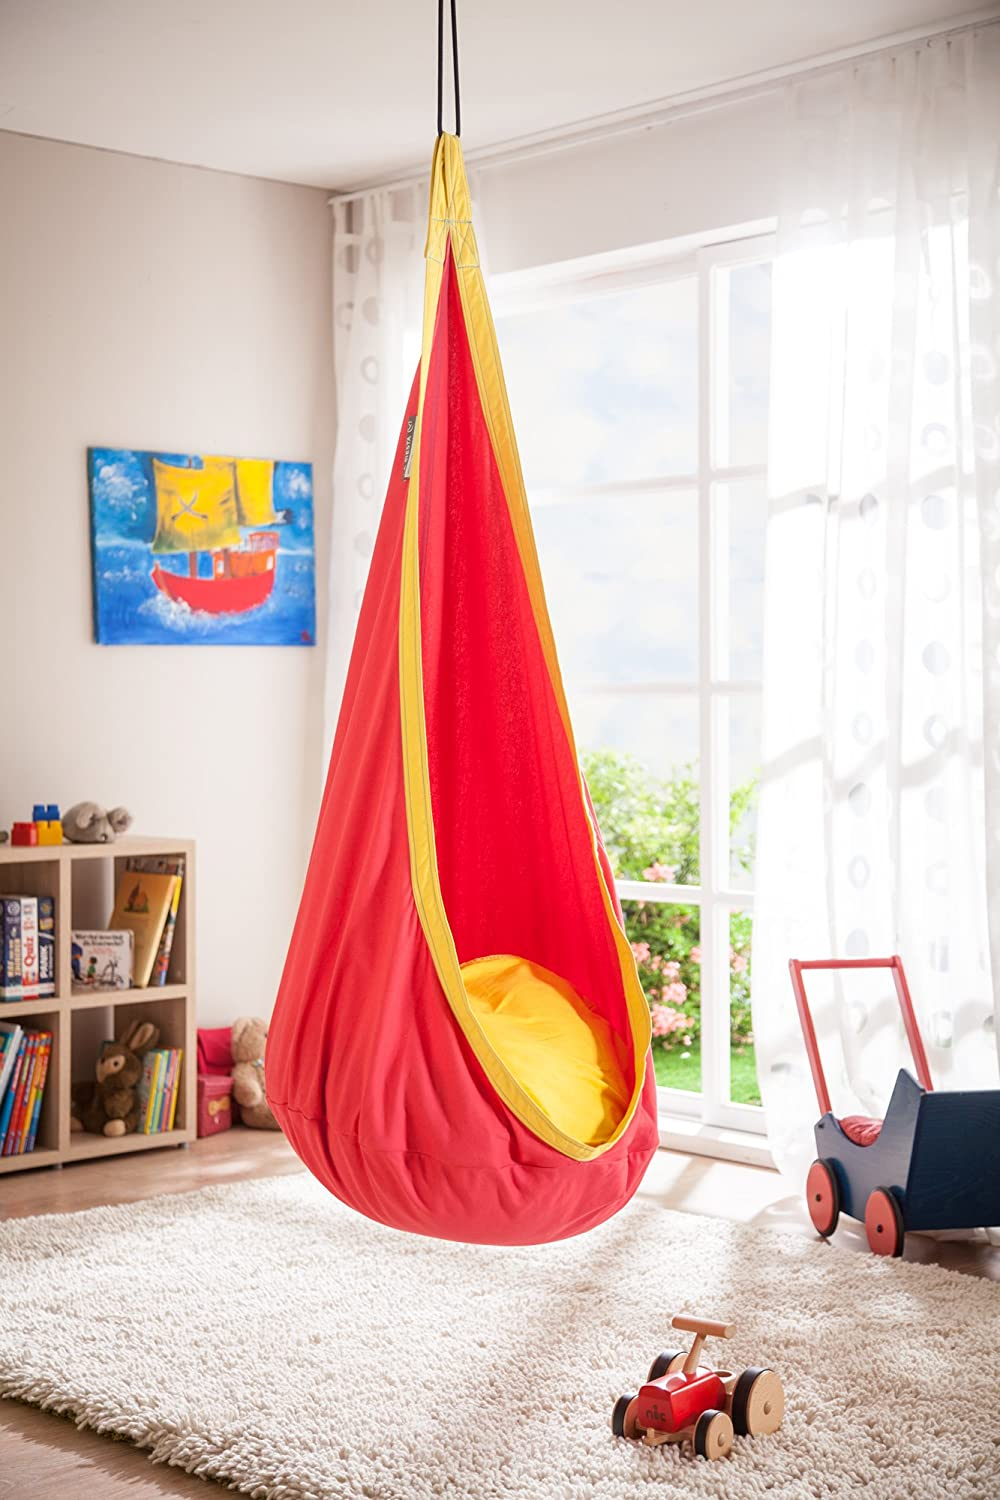 Amazon.com  LA SIESTA Joki Cherry - Cotton Kids Hanging Nest  Hammocks  Garden u0026 Outdoor & Amazon.com : LA SIESTA Joki Cherry - Cotton Kids Hanging Nest ...